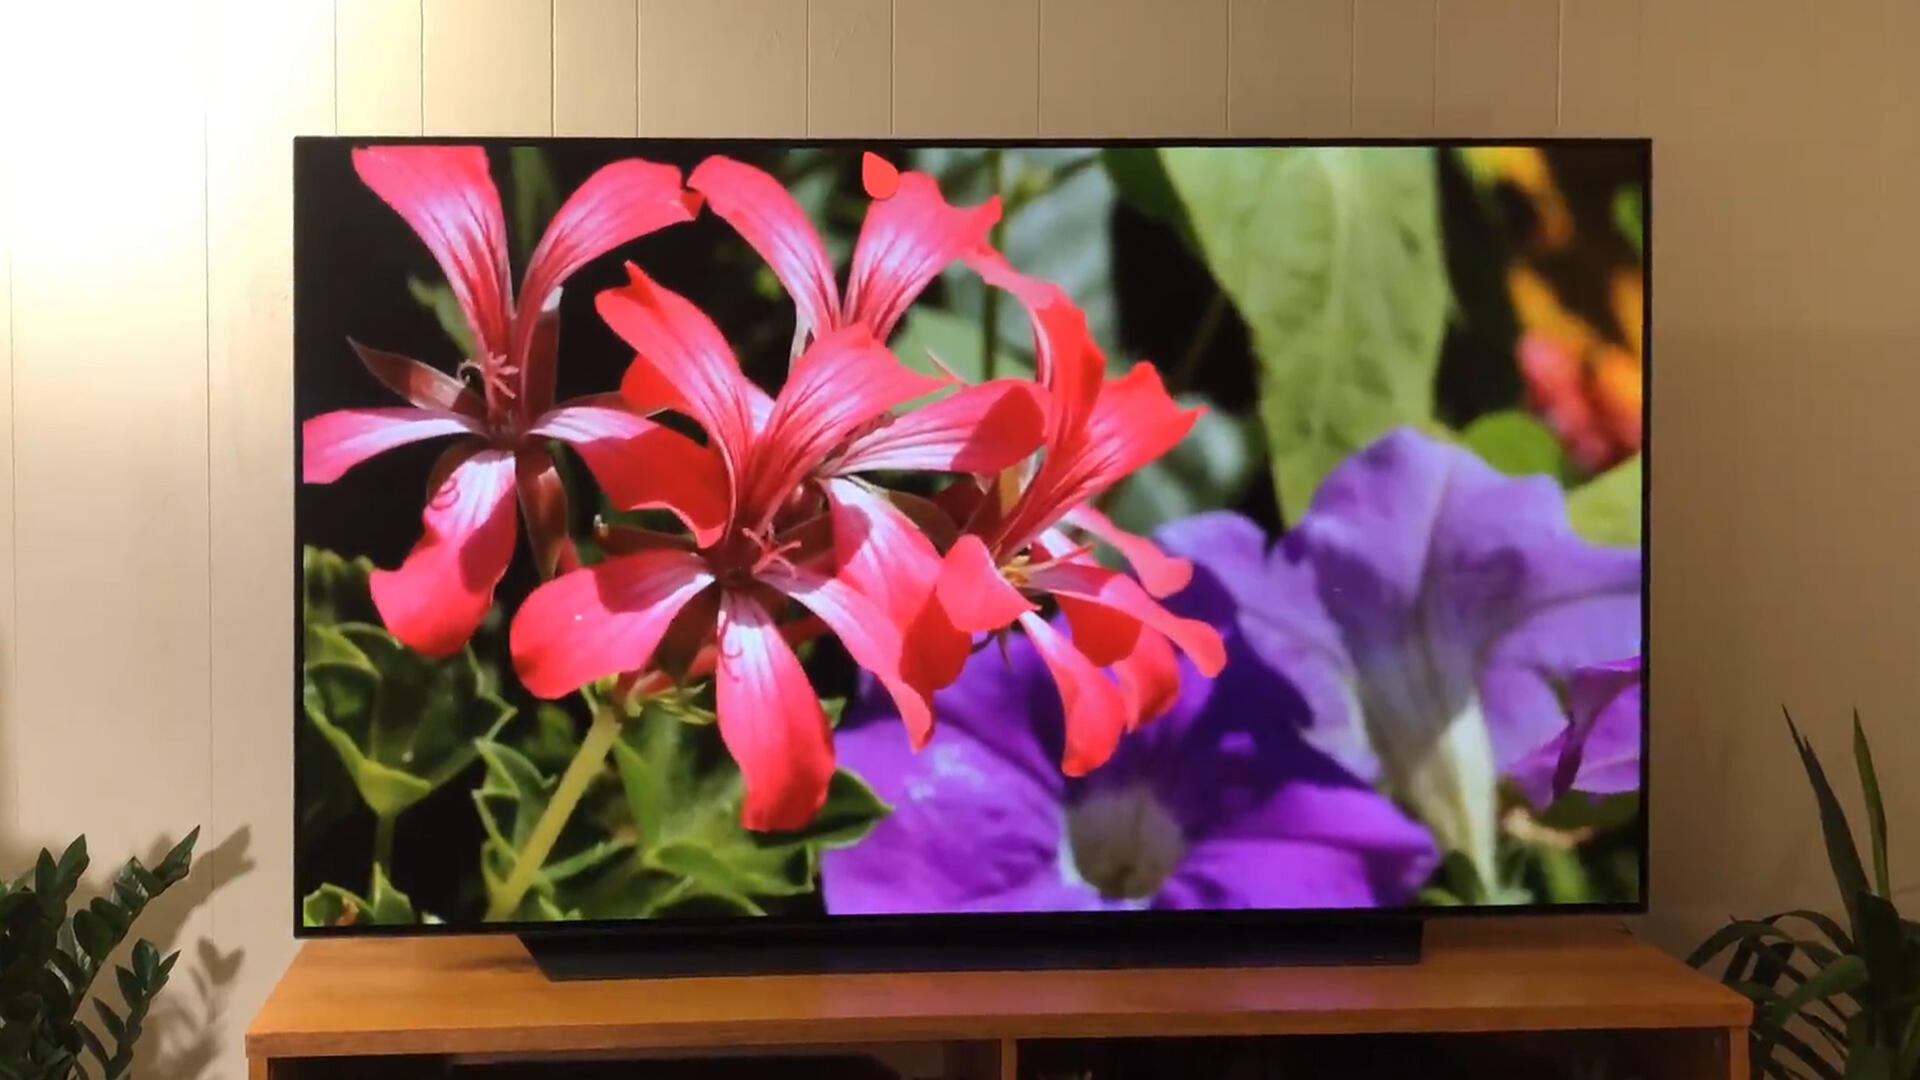 Video: LG CX OLED TV review: Awesome picture, high price